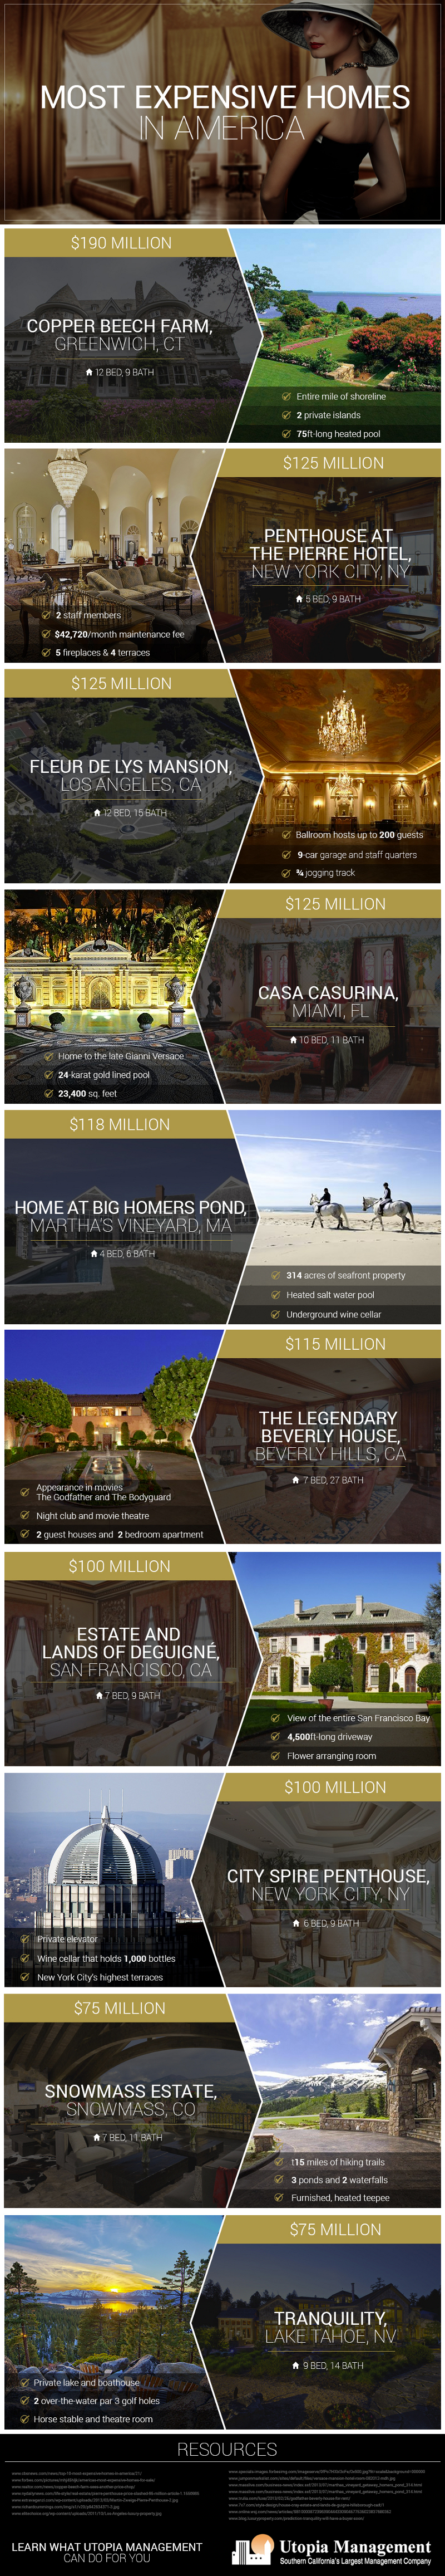 Most-Expensive-Homes